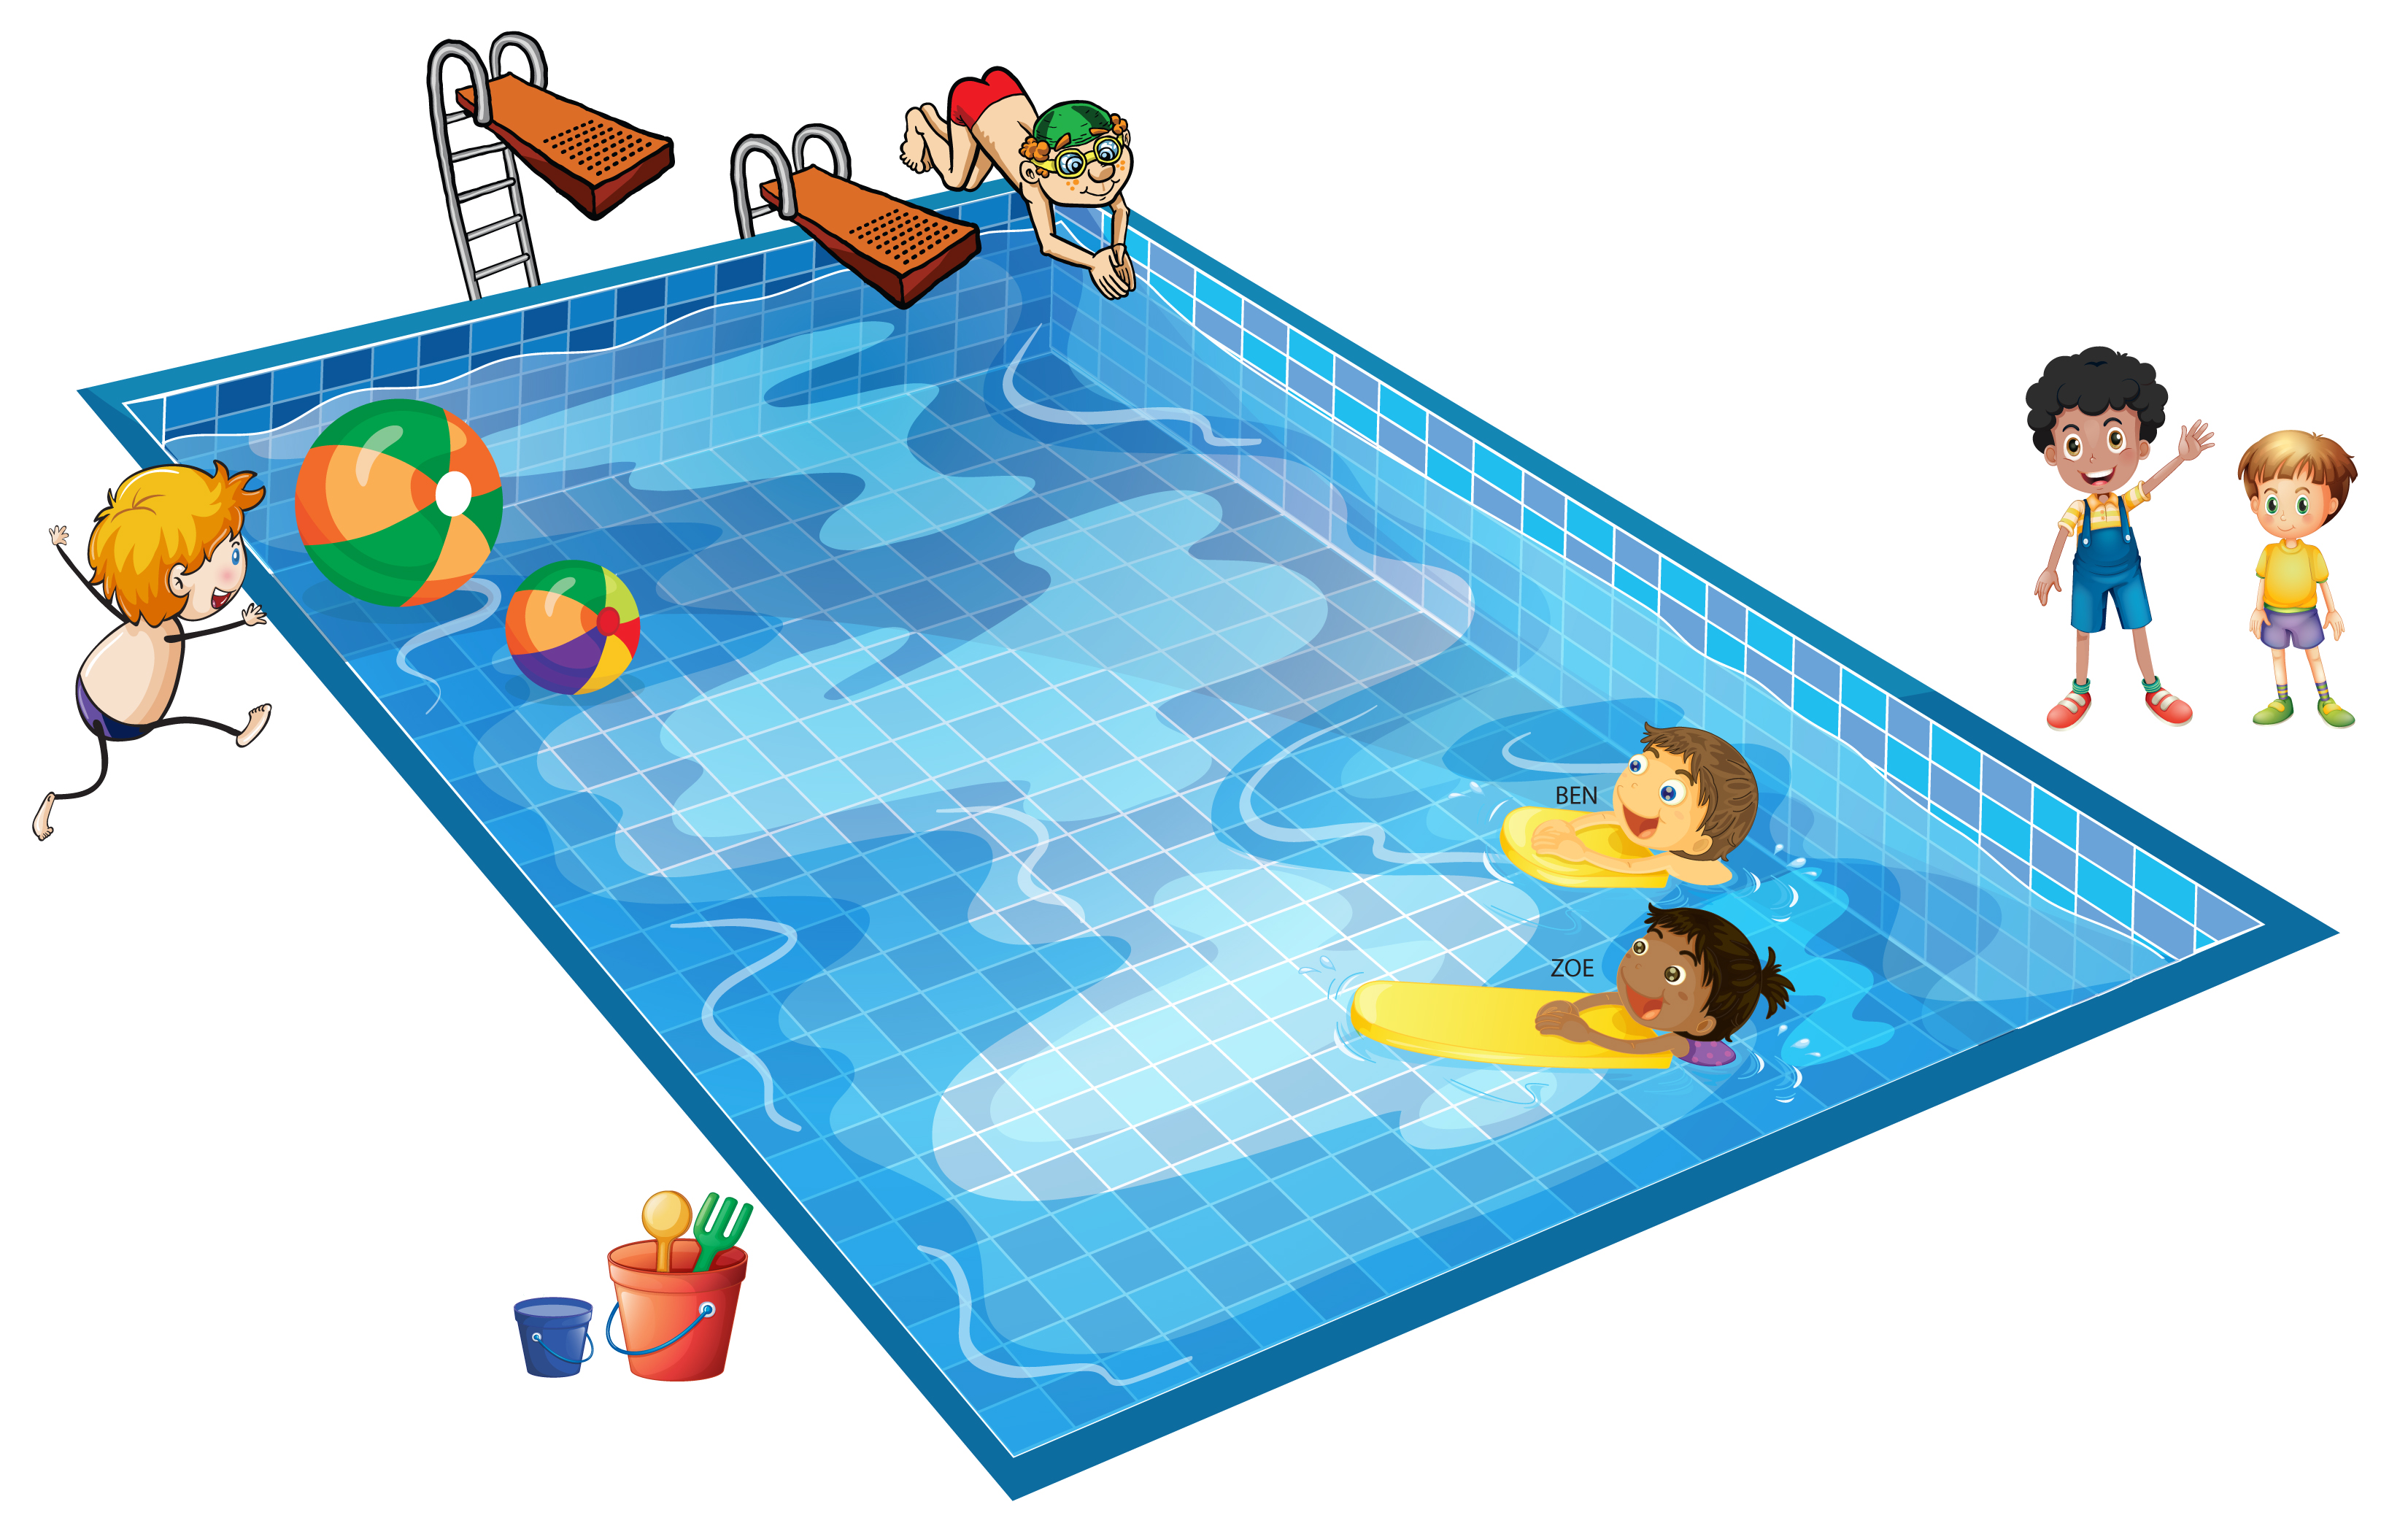 Swimming pool clipart  Heights swimming pool bad urach clipart - Clipground